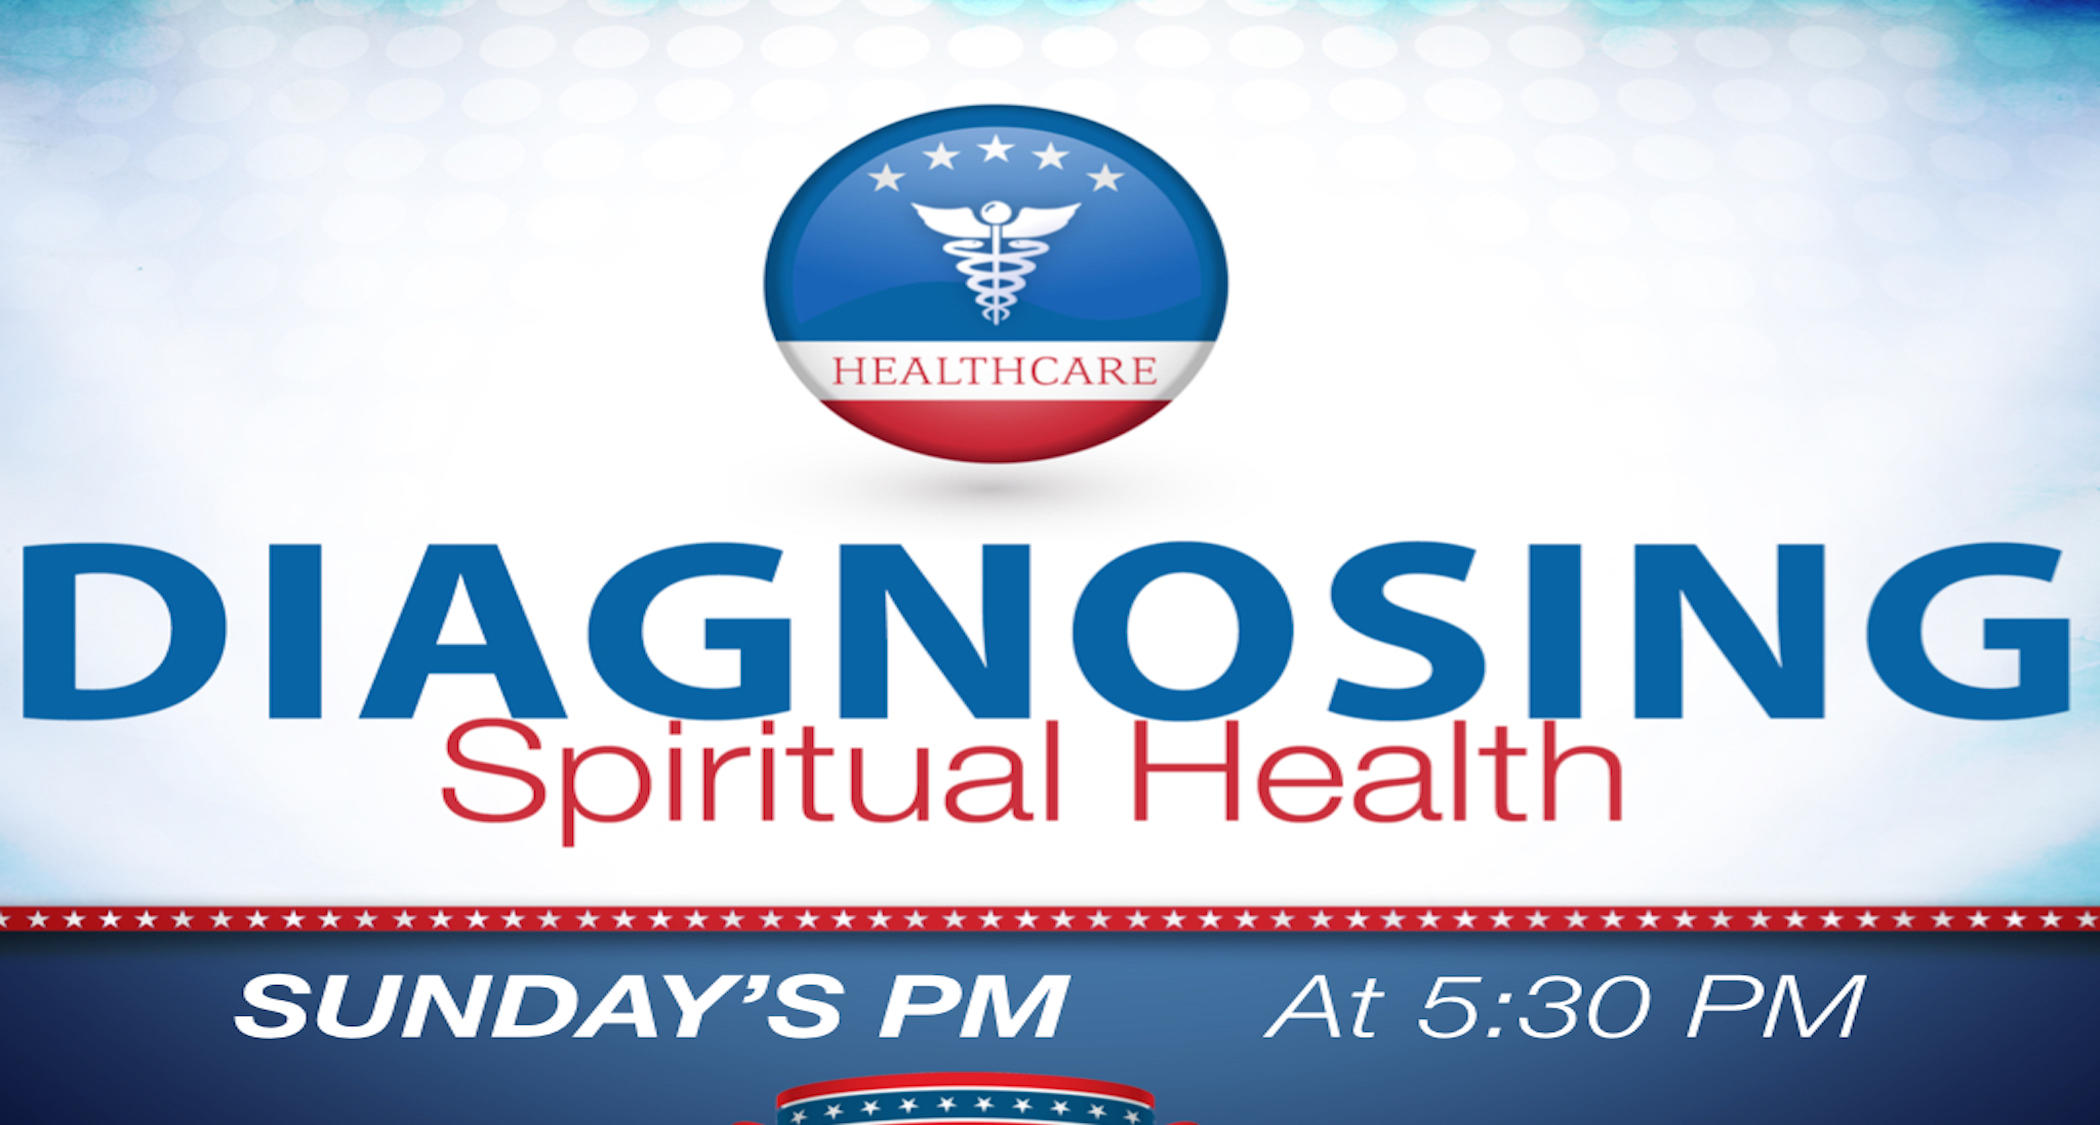 Diagnosing Spiritual Heath